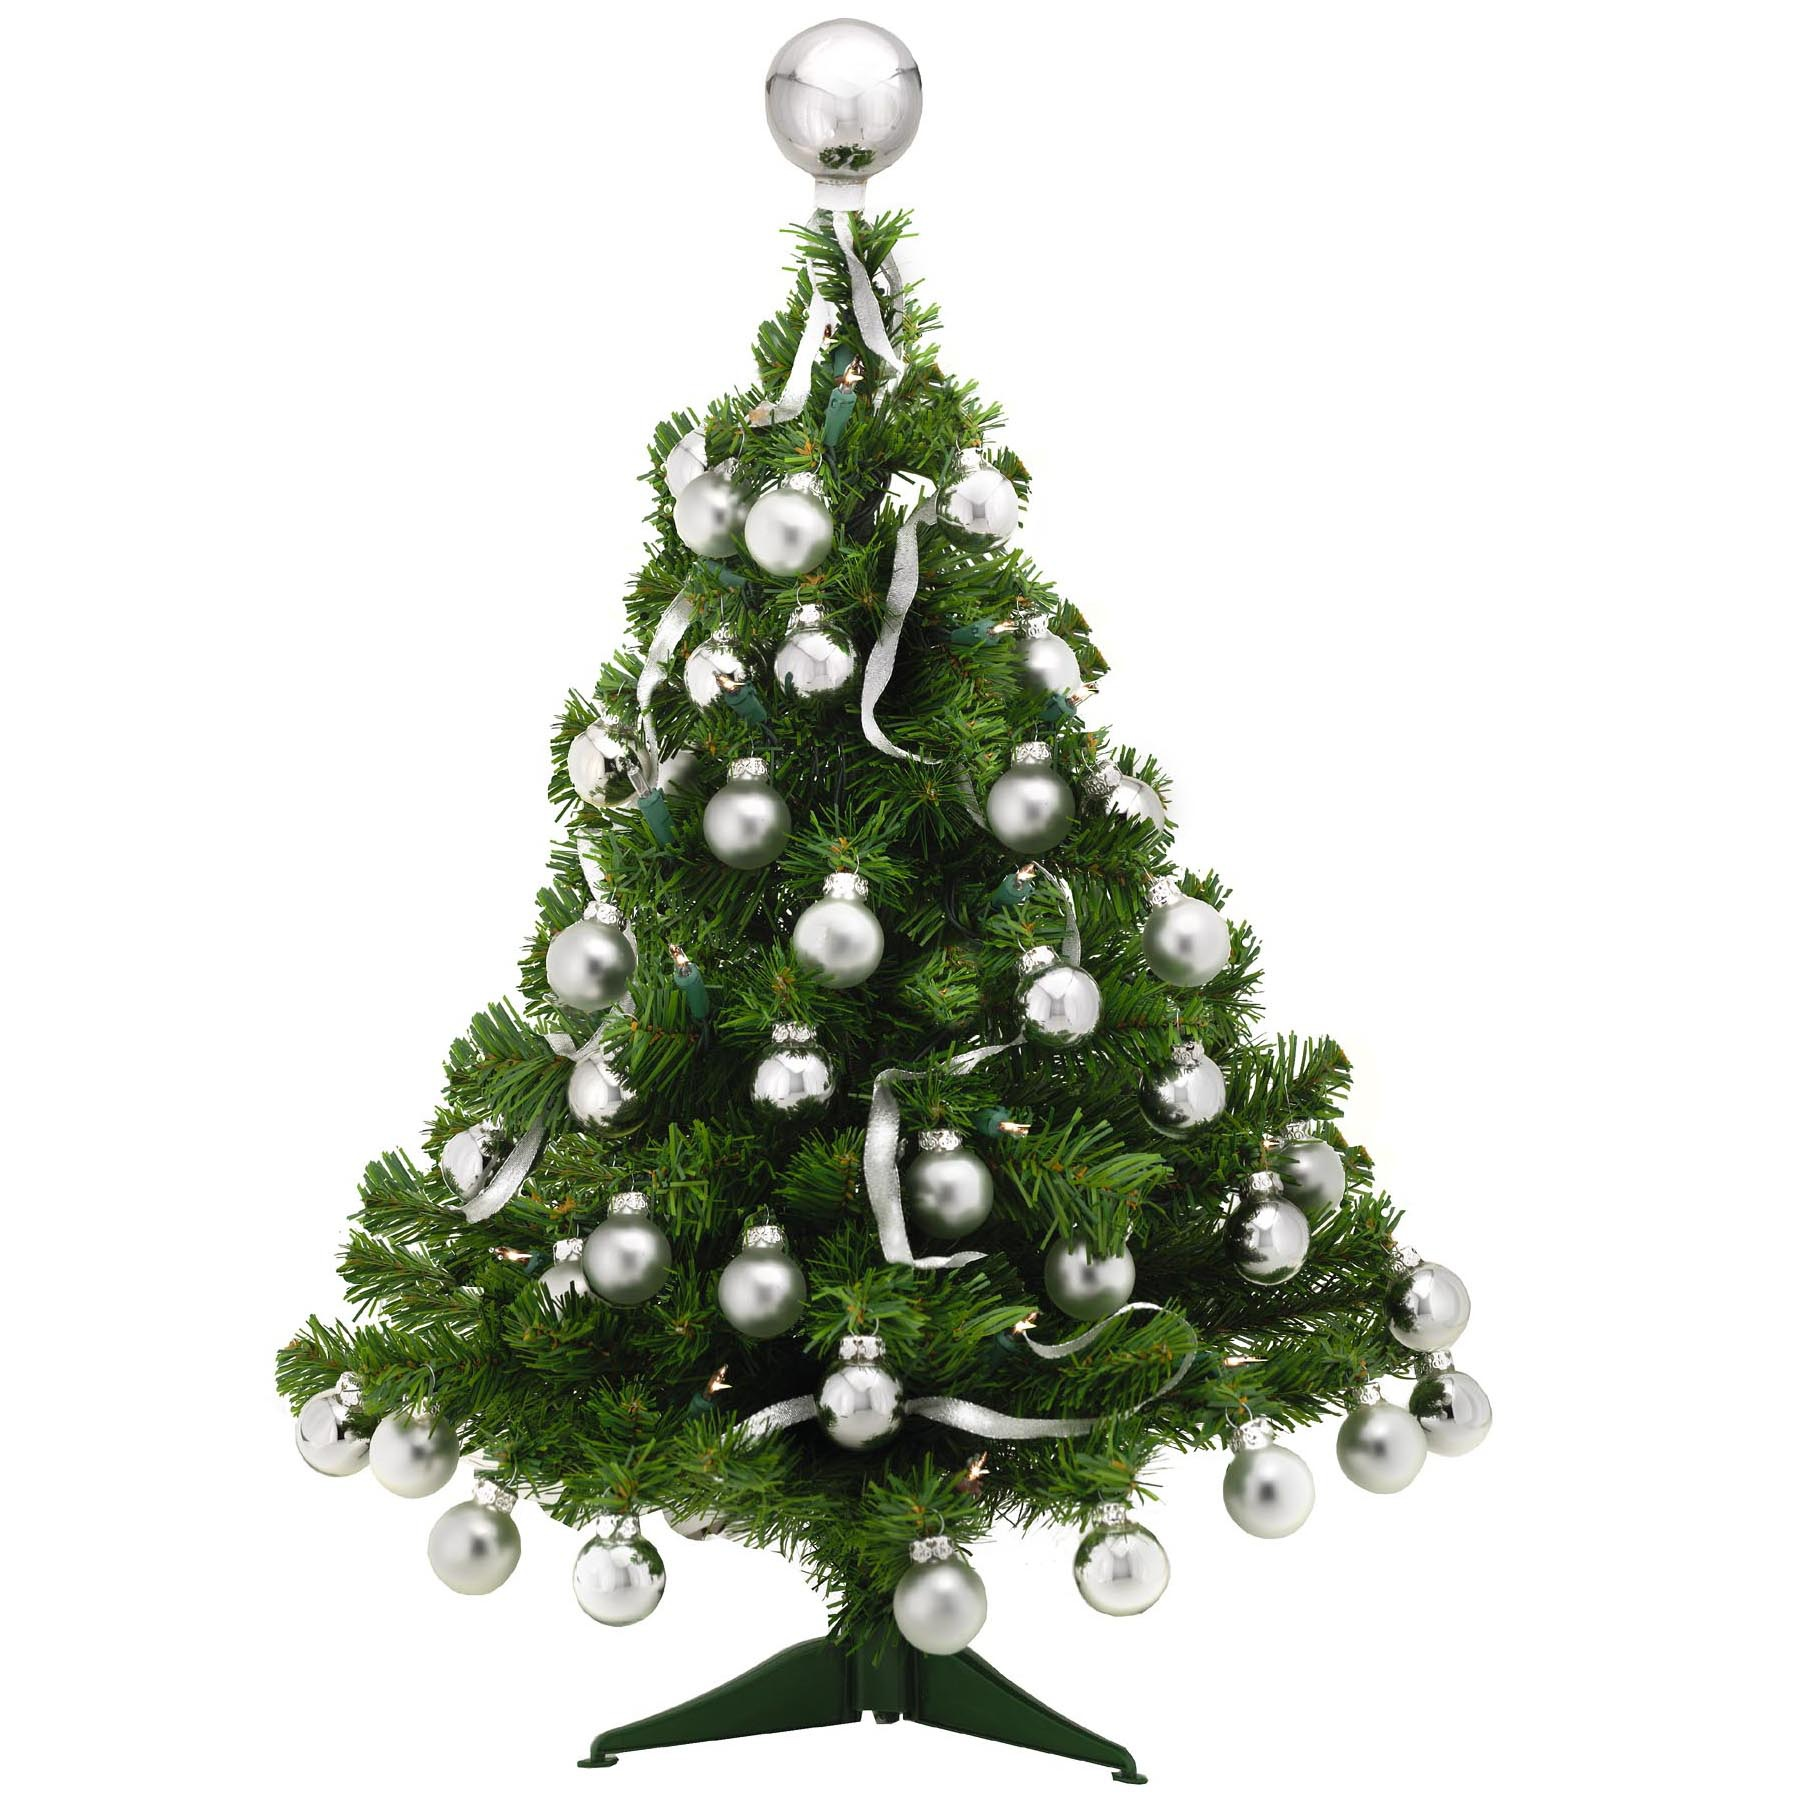 962 7382 home artificial christmas trees tabletop and decorative trees knc3sQpf